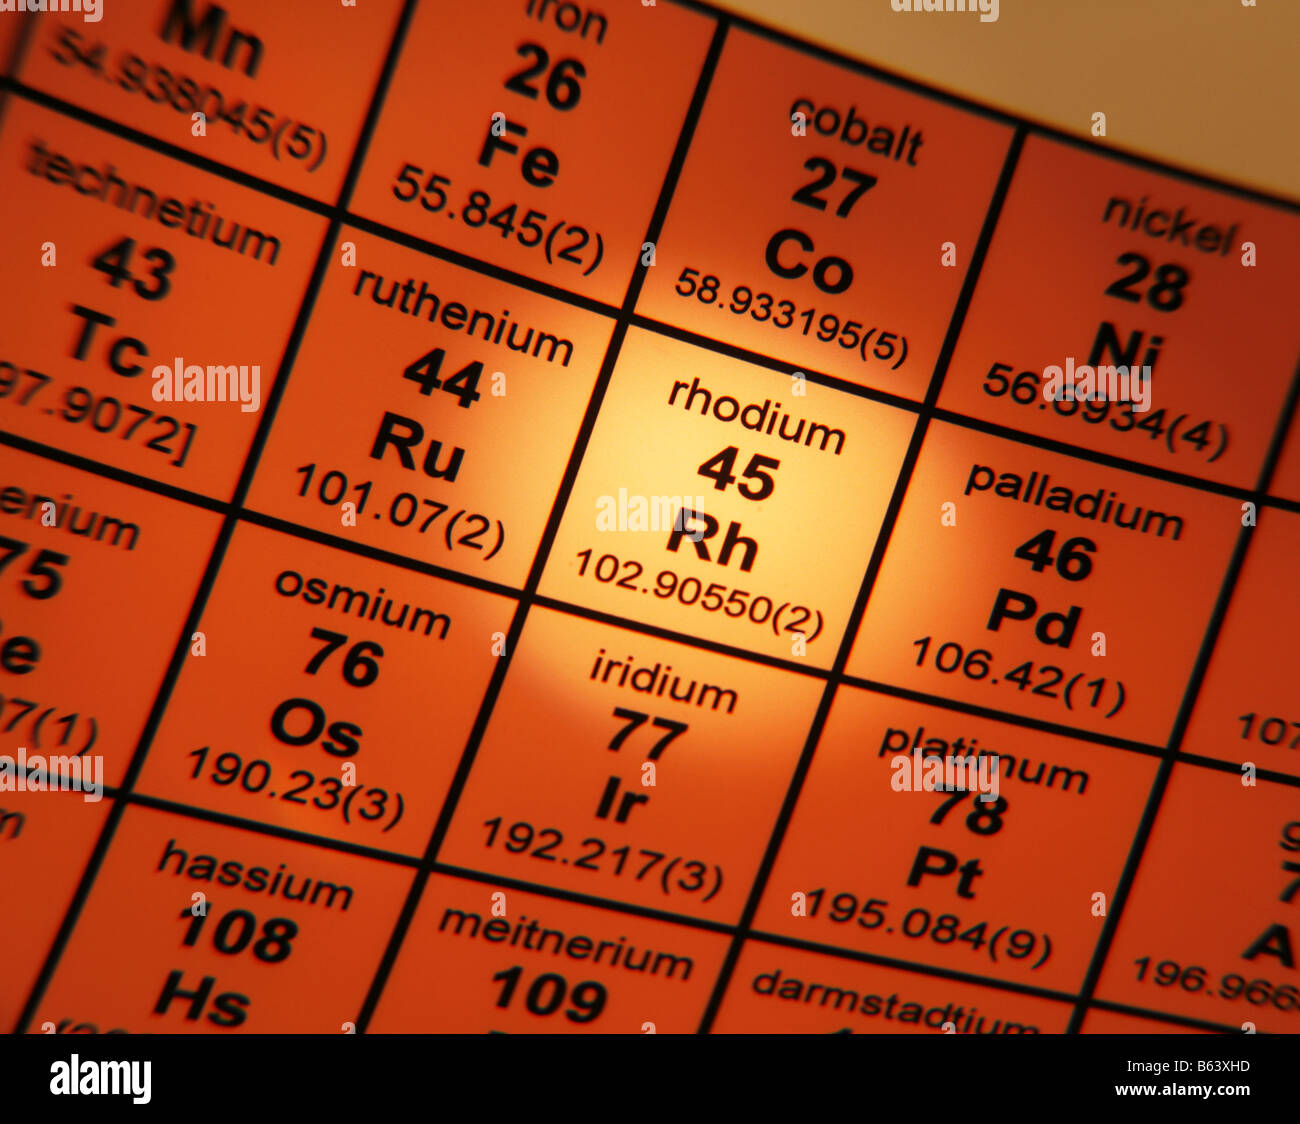 Periodic table of elements rhodium stock photo royalty free image periodic table of elements rhodium gamestrikefo Image collections